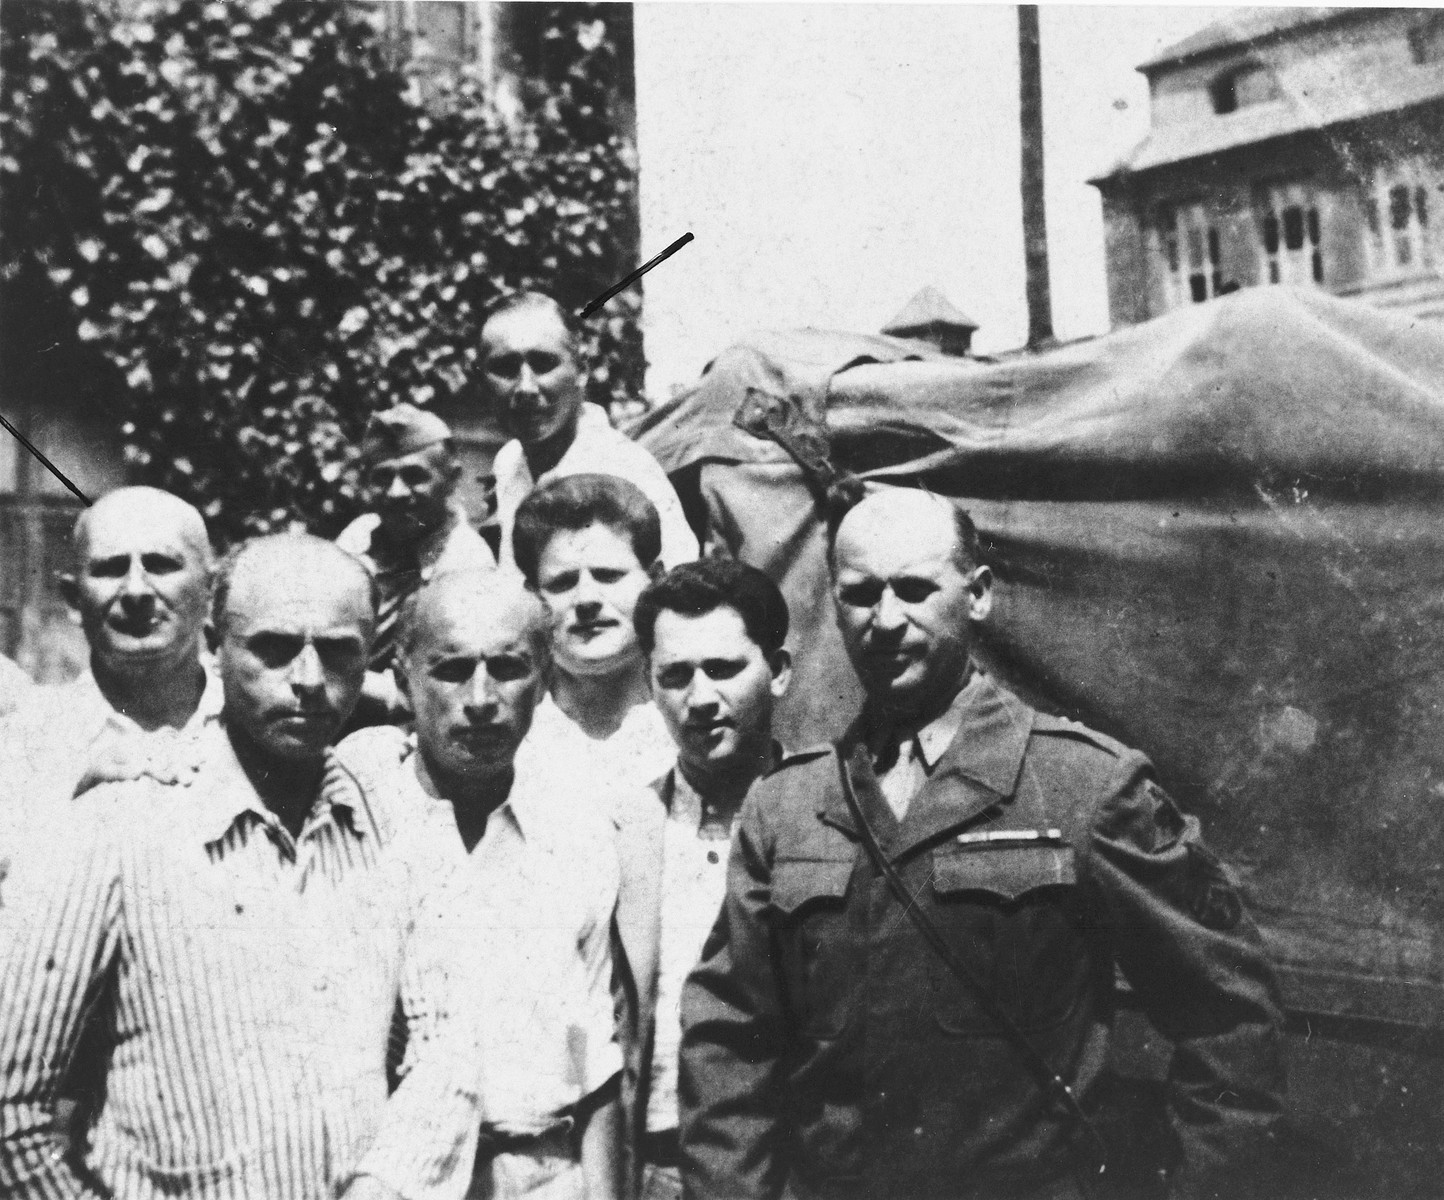 Group portrait of Jewish survivors (largely from the Kovno ghetto) at the St. Ottilien displaced persons hospital camp in Bavaria.  Among those pictured are Motel Borstein, violinist  in the St. Ottilien  Jewish Orchestra and the Ex-Concentration Camp Orchestra in Furstenfeldbruck (far left); his son Eli Borstein (back center); and Michael Hofmekler (front center).